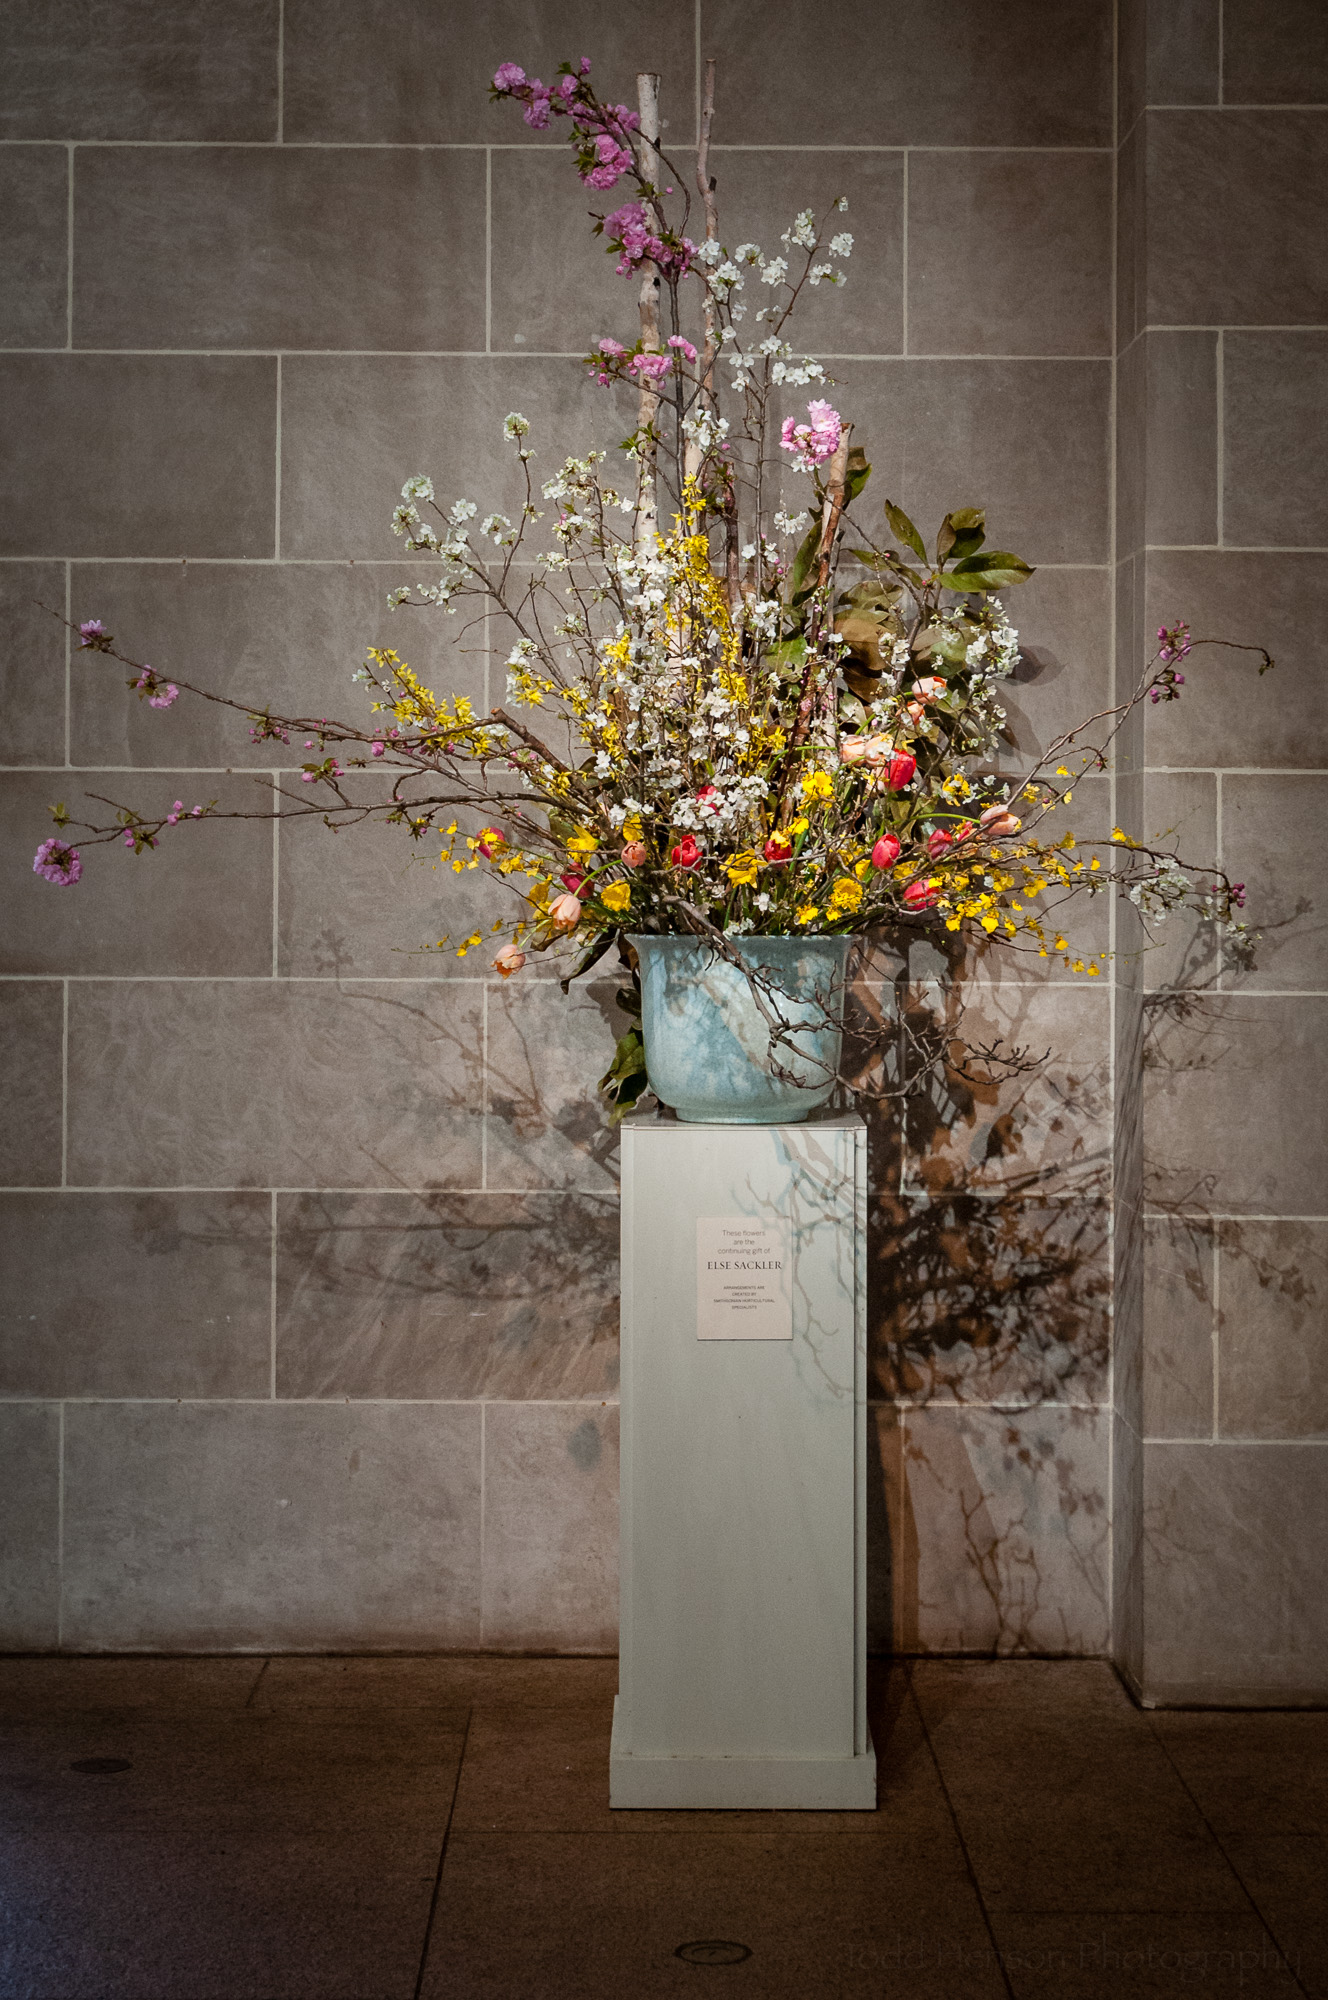 Flower display in the Sackler Gallery entrance. These are a continuing gift of Else Sackler.